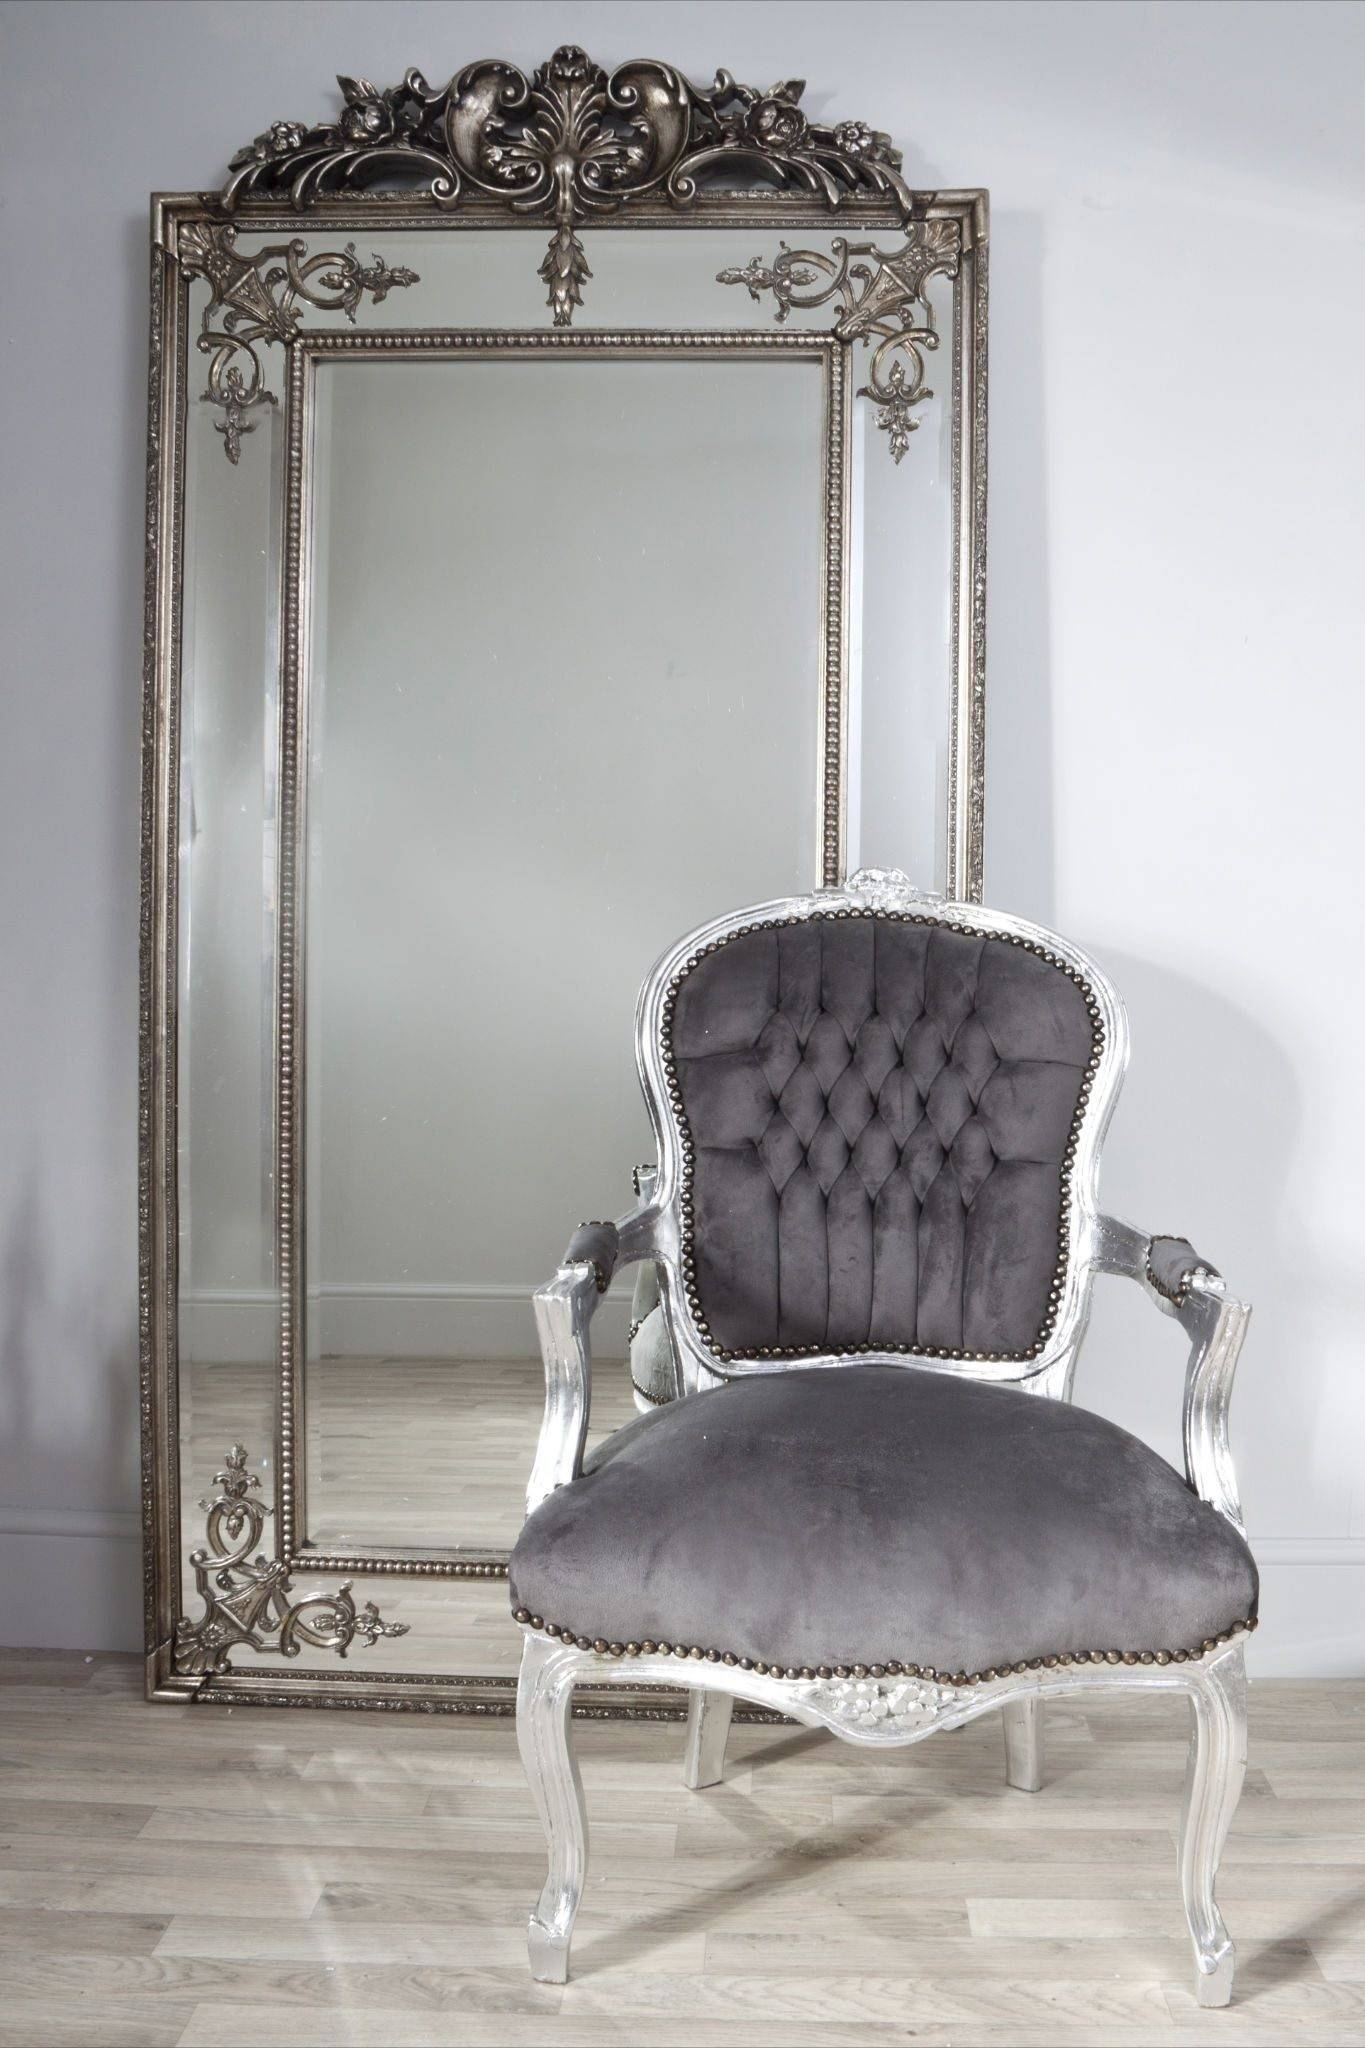 Ornate Mirrors For Sale 71 Fascinating Ideas On Gorgeous Ornate Within Silver Ornate Wall Mirrors (View 20 of 25)